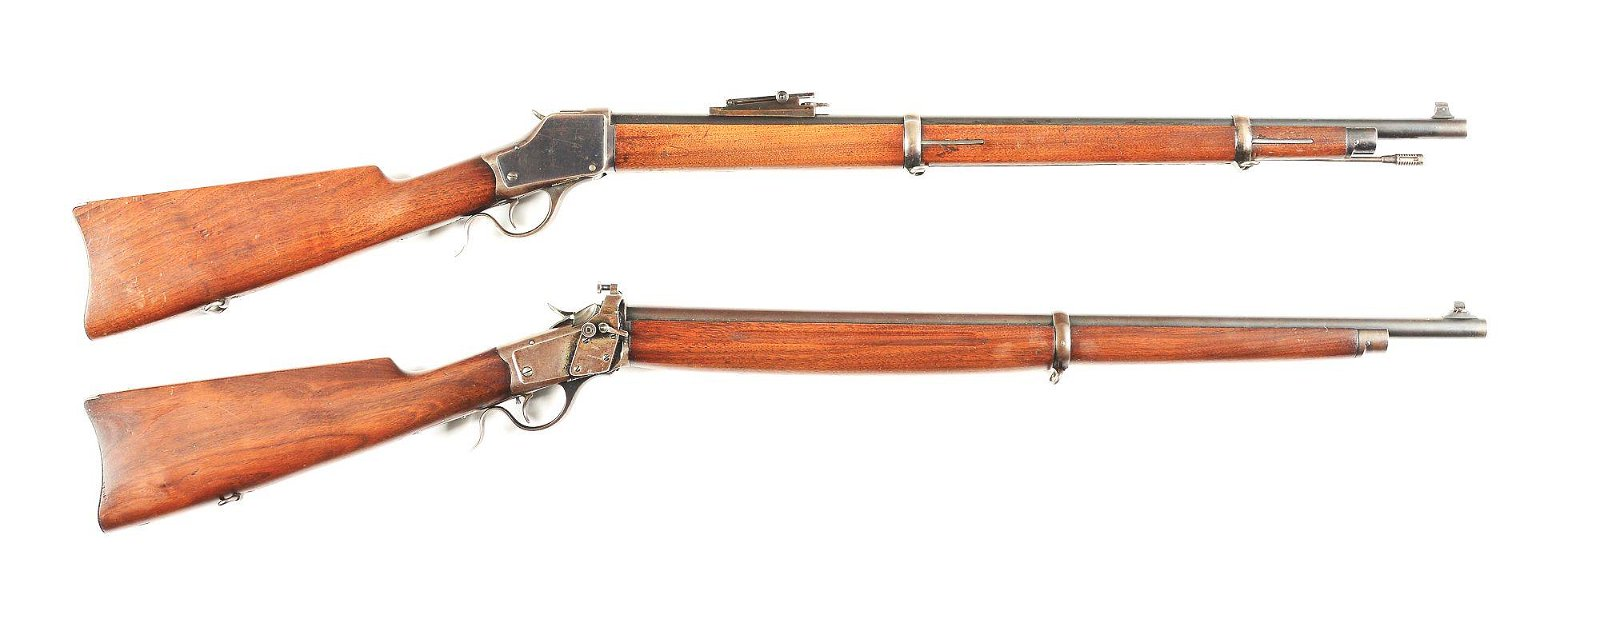 (C) LOT OF 2: WINCHESTER 1885 HIGH WALL MUSKET, AND